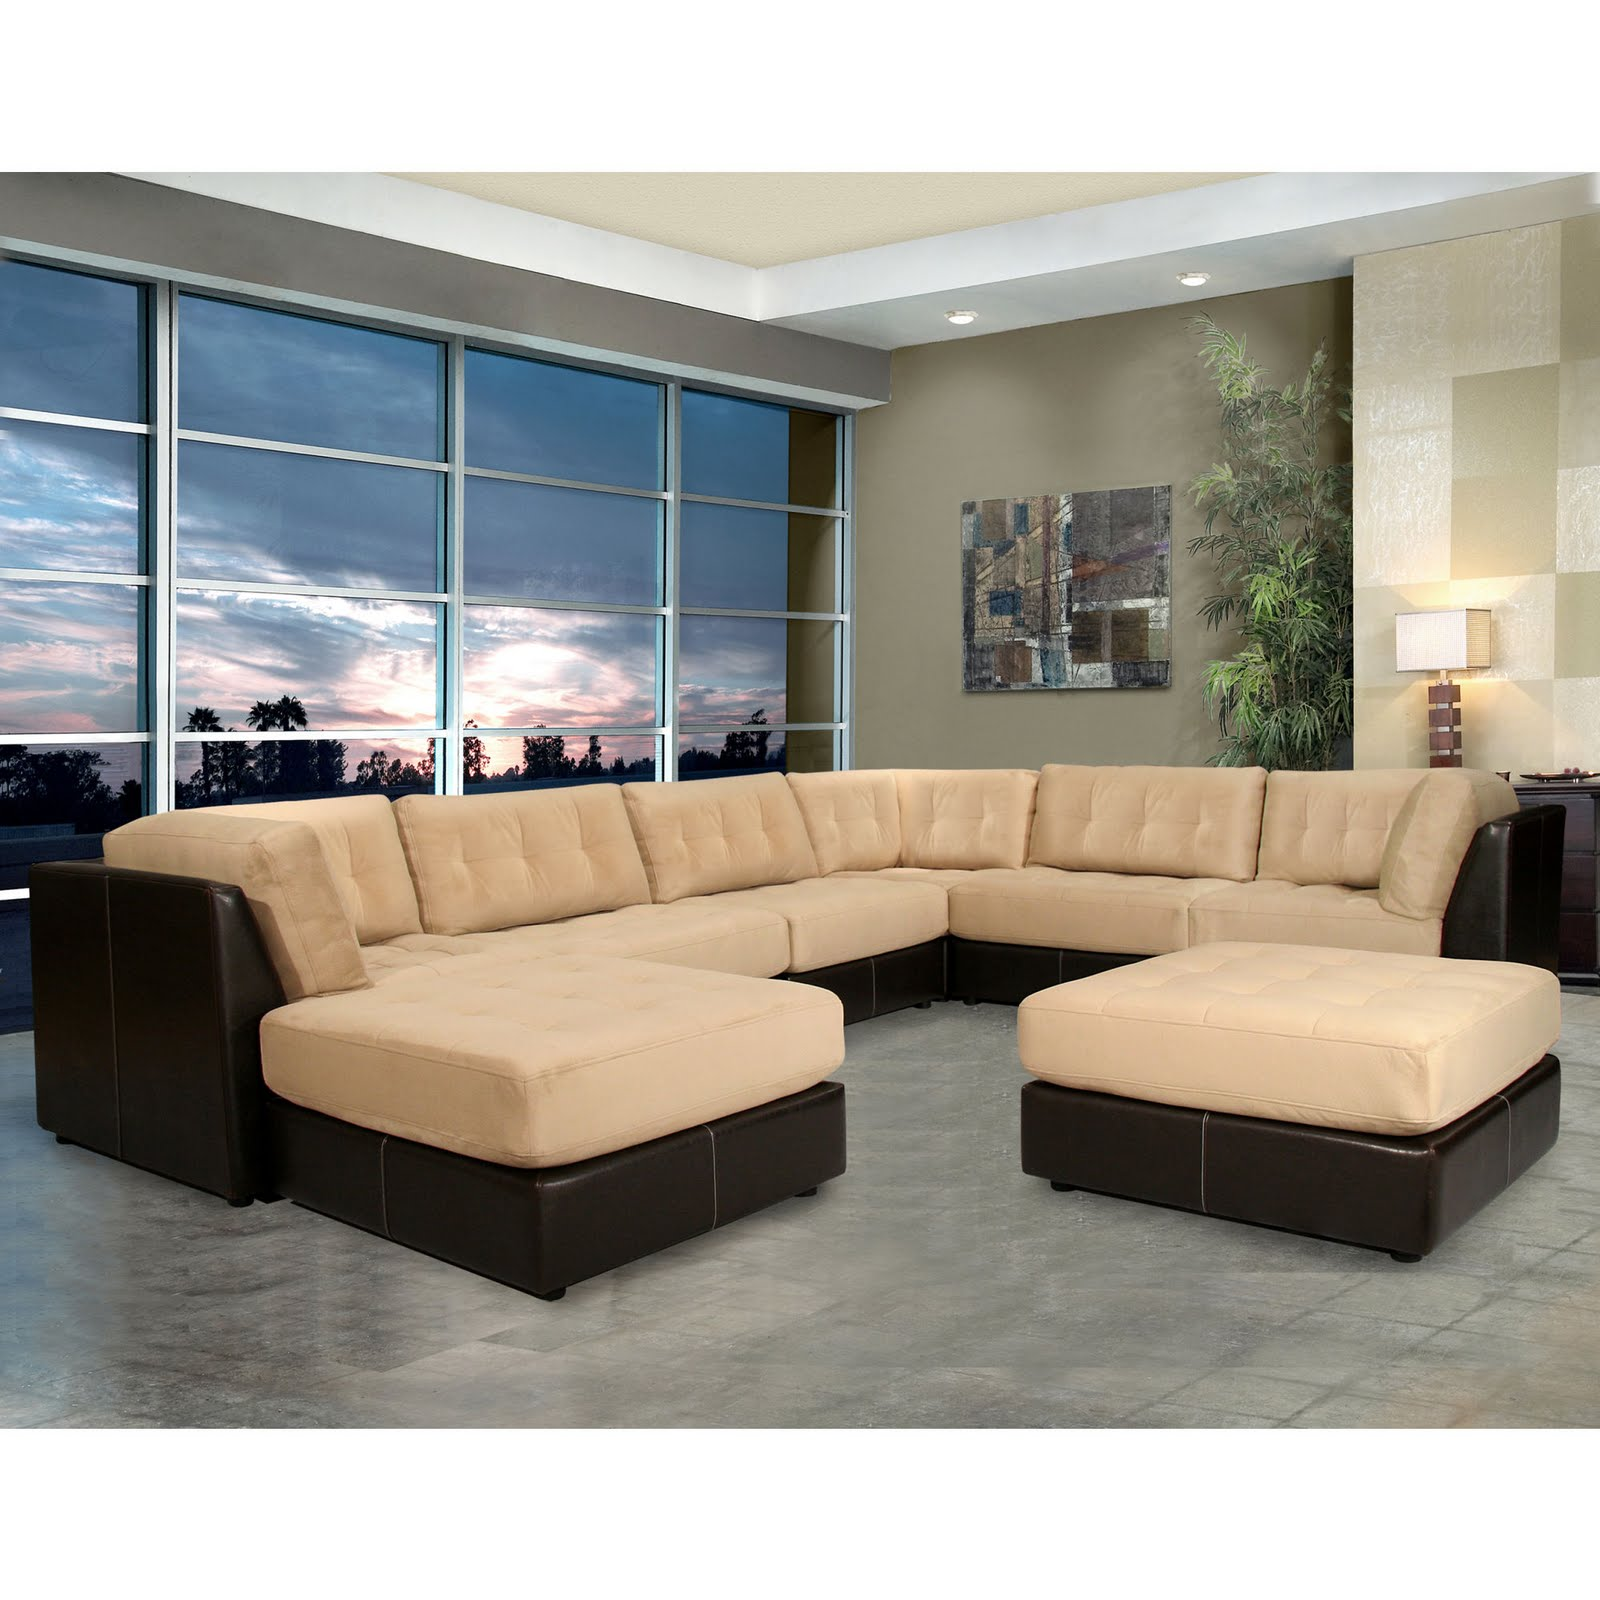 Modular Sectional Sofa | 1600 x 1600 · 213 kB · jpeg